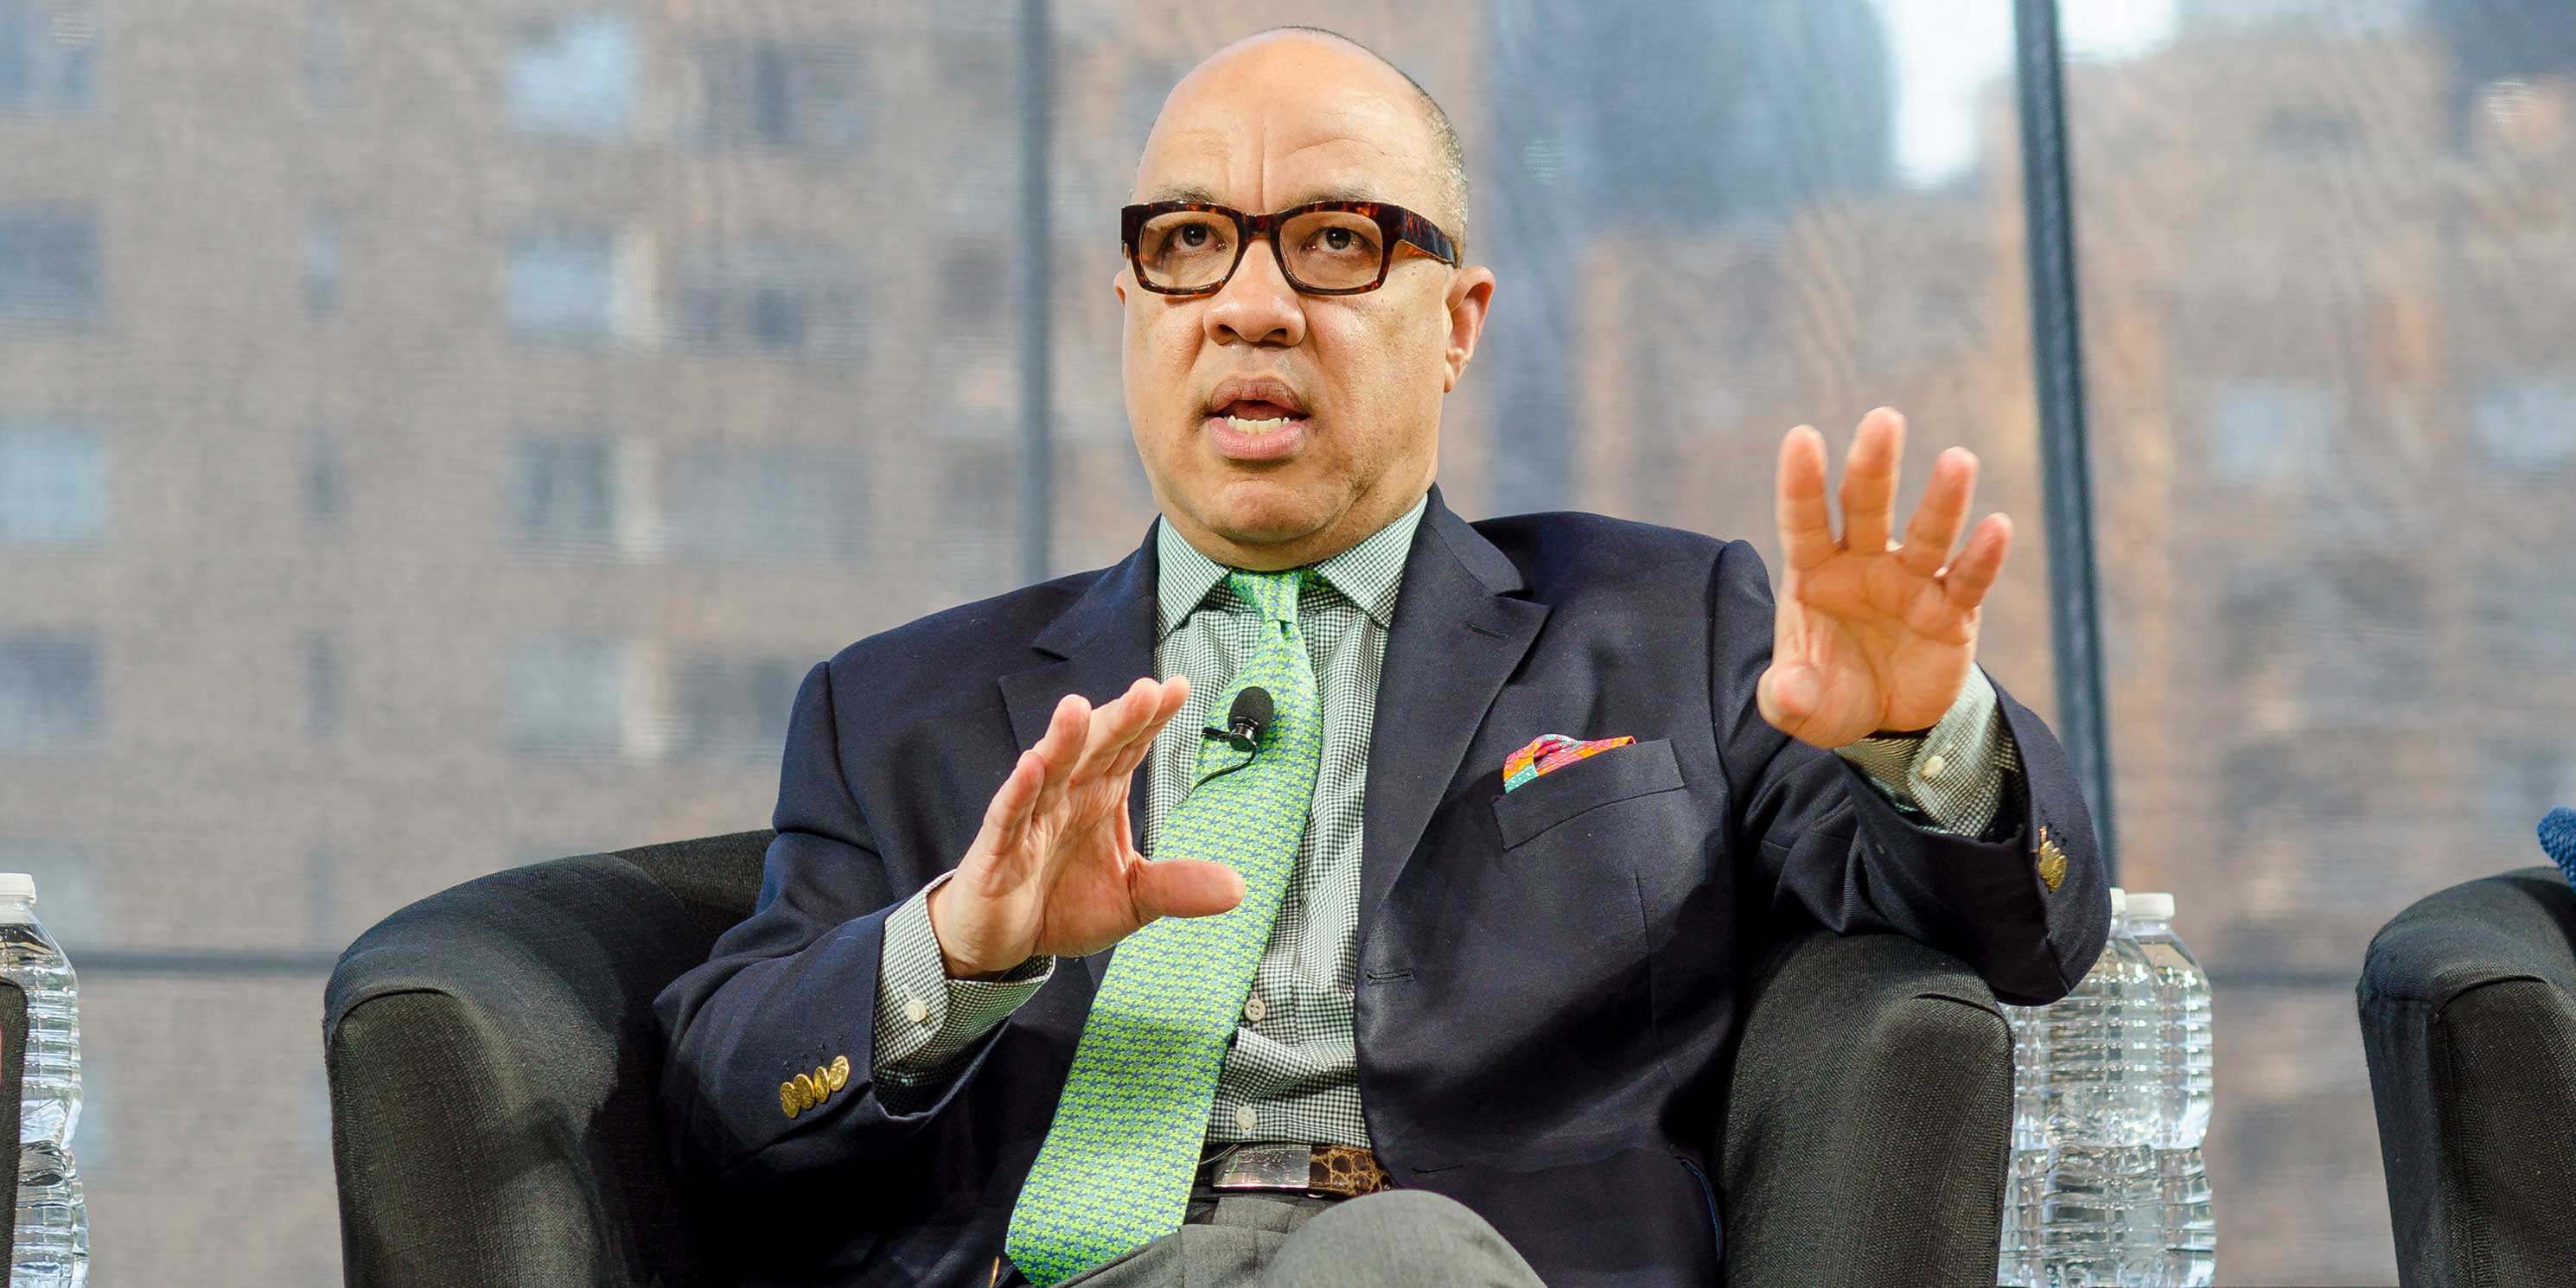 Darren Walker speaking at the 2013 Summit